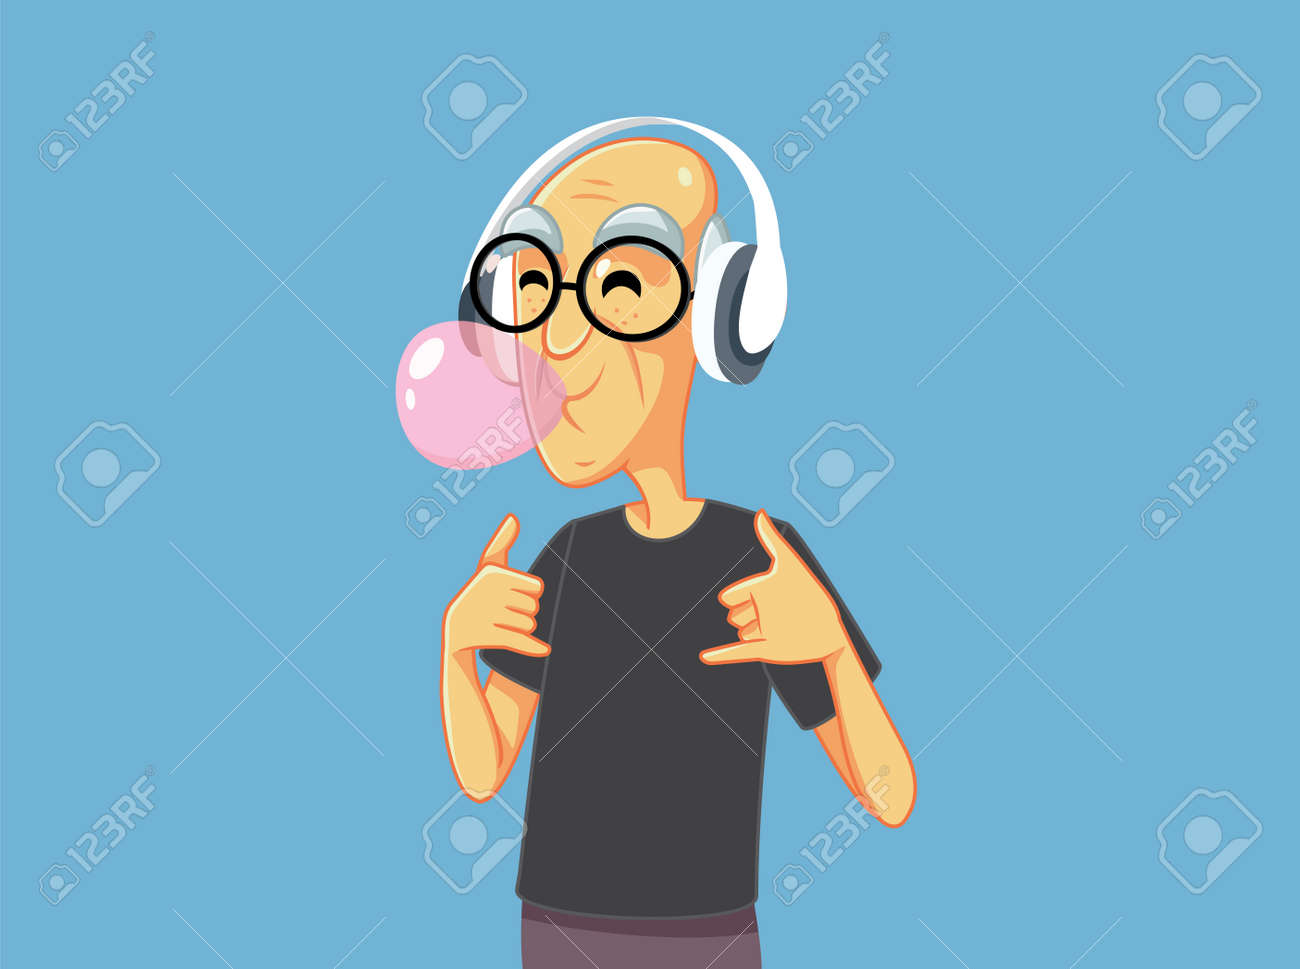 Cool Grandpa Chewing Bubble Gum Listening to Music - 171466248